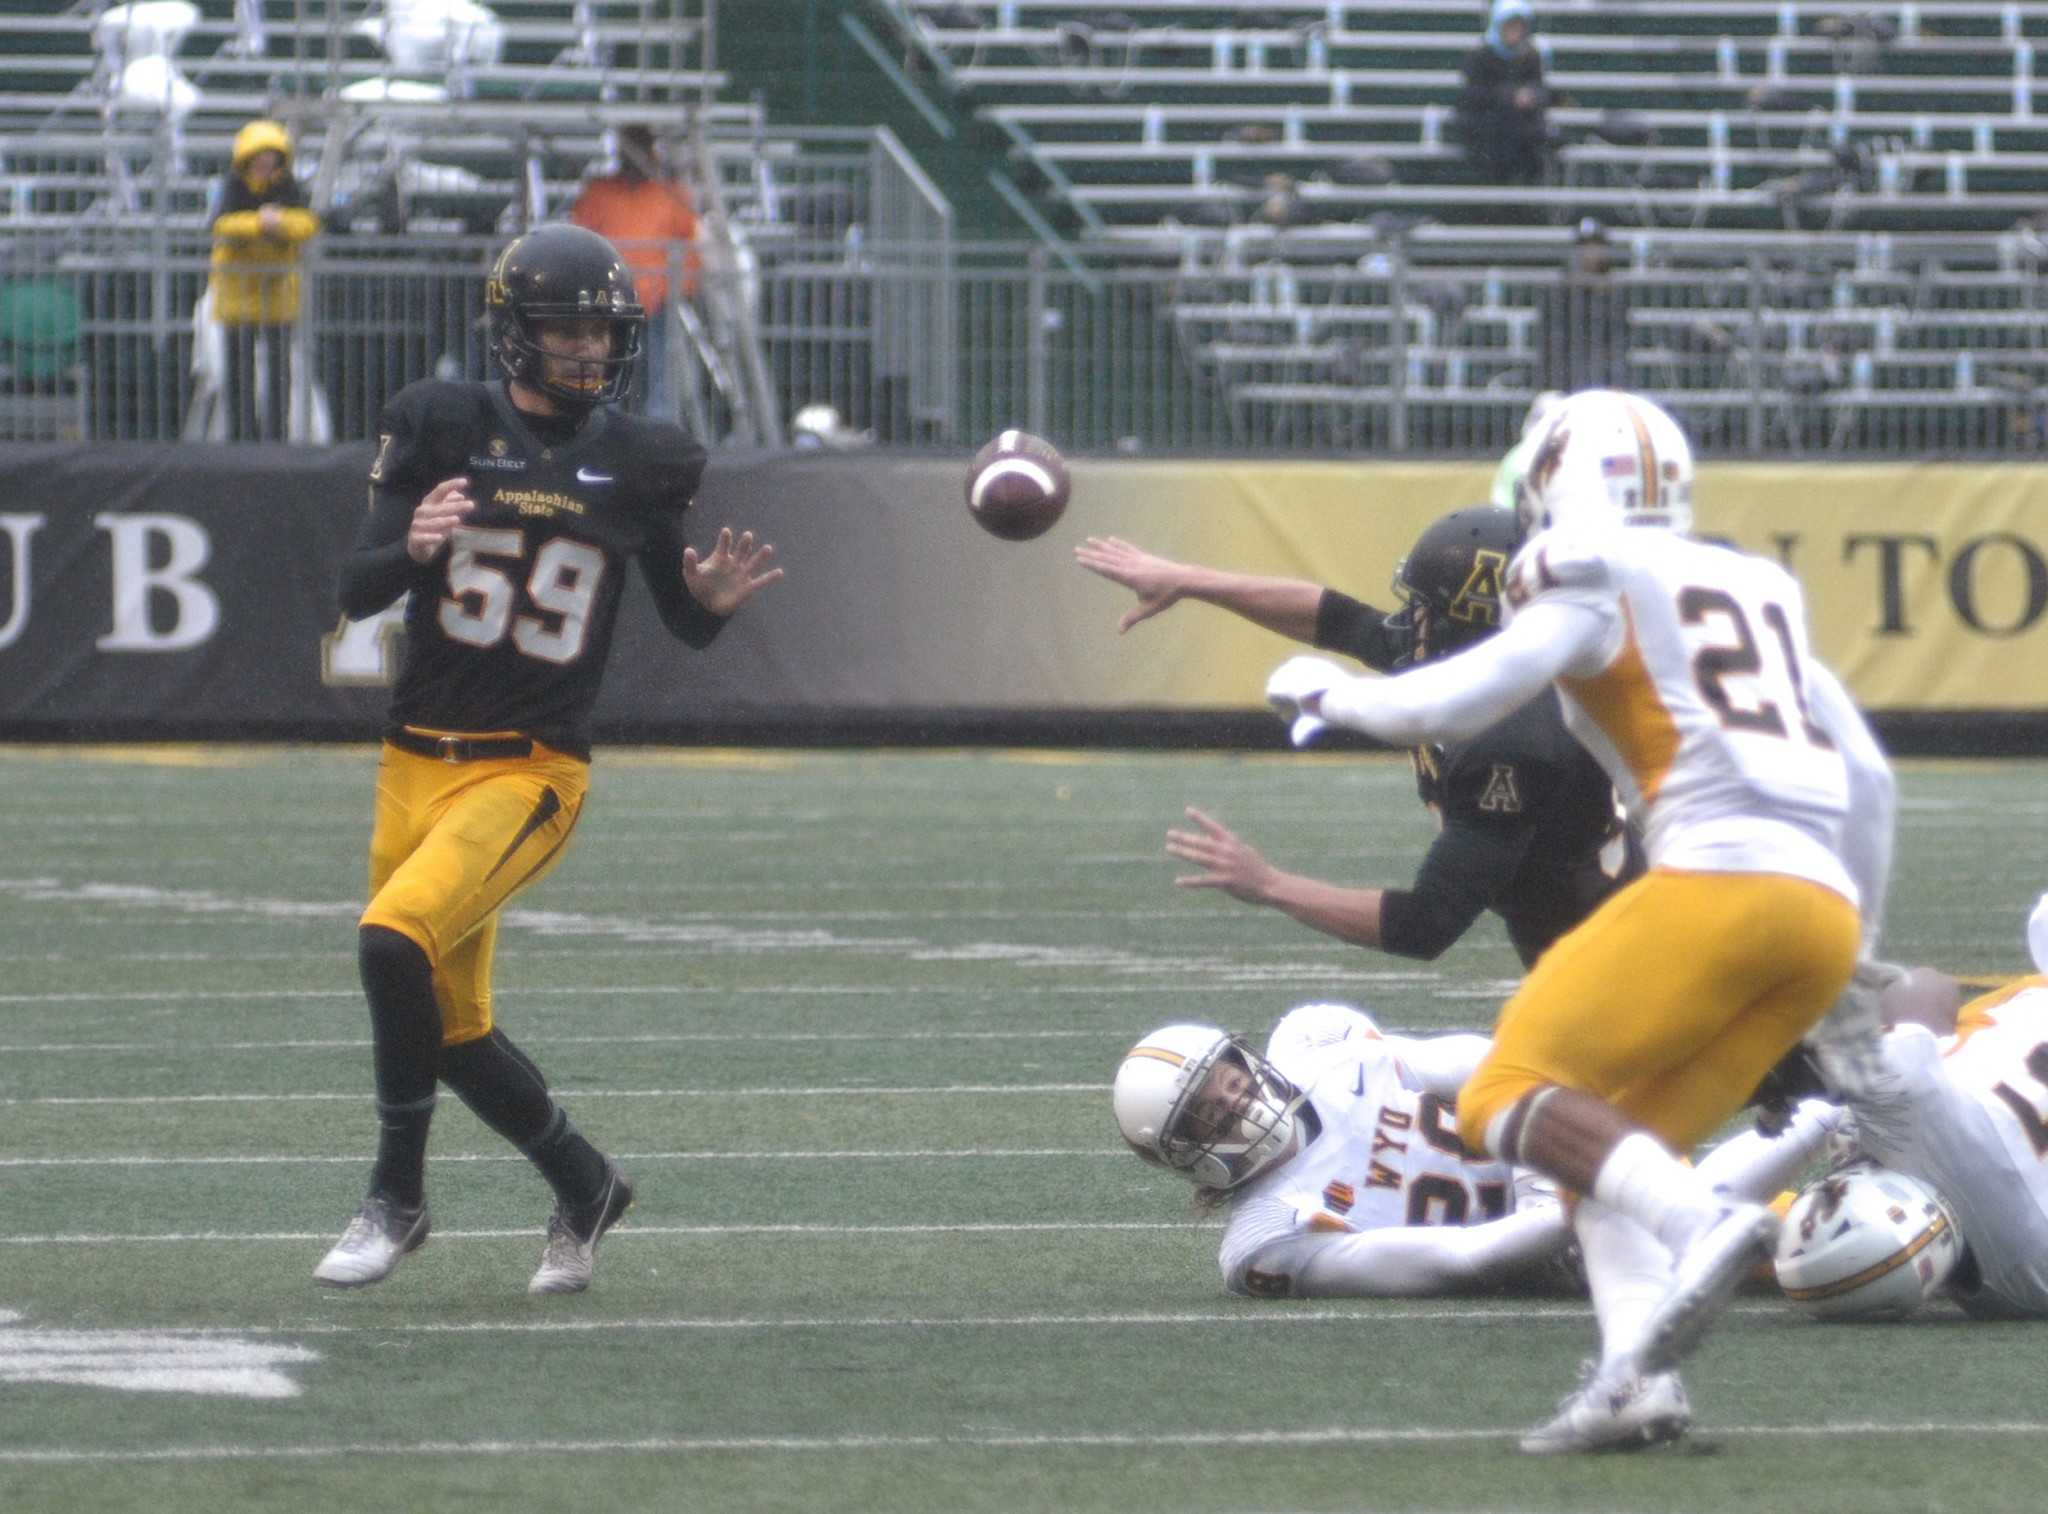 App+State+kicker+Zach+Matics+receives+a+pitch+on+a+fake+field+goal+attempt+in+the+second+quarter.+The+Mountaineers+defeated+Wyoming+31-13.